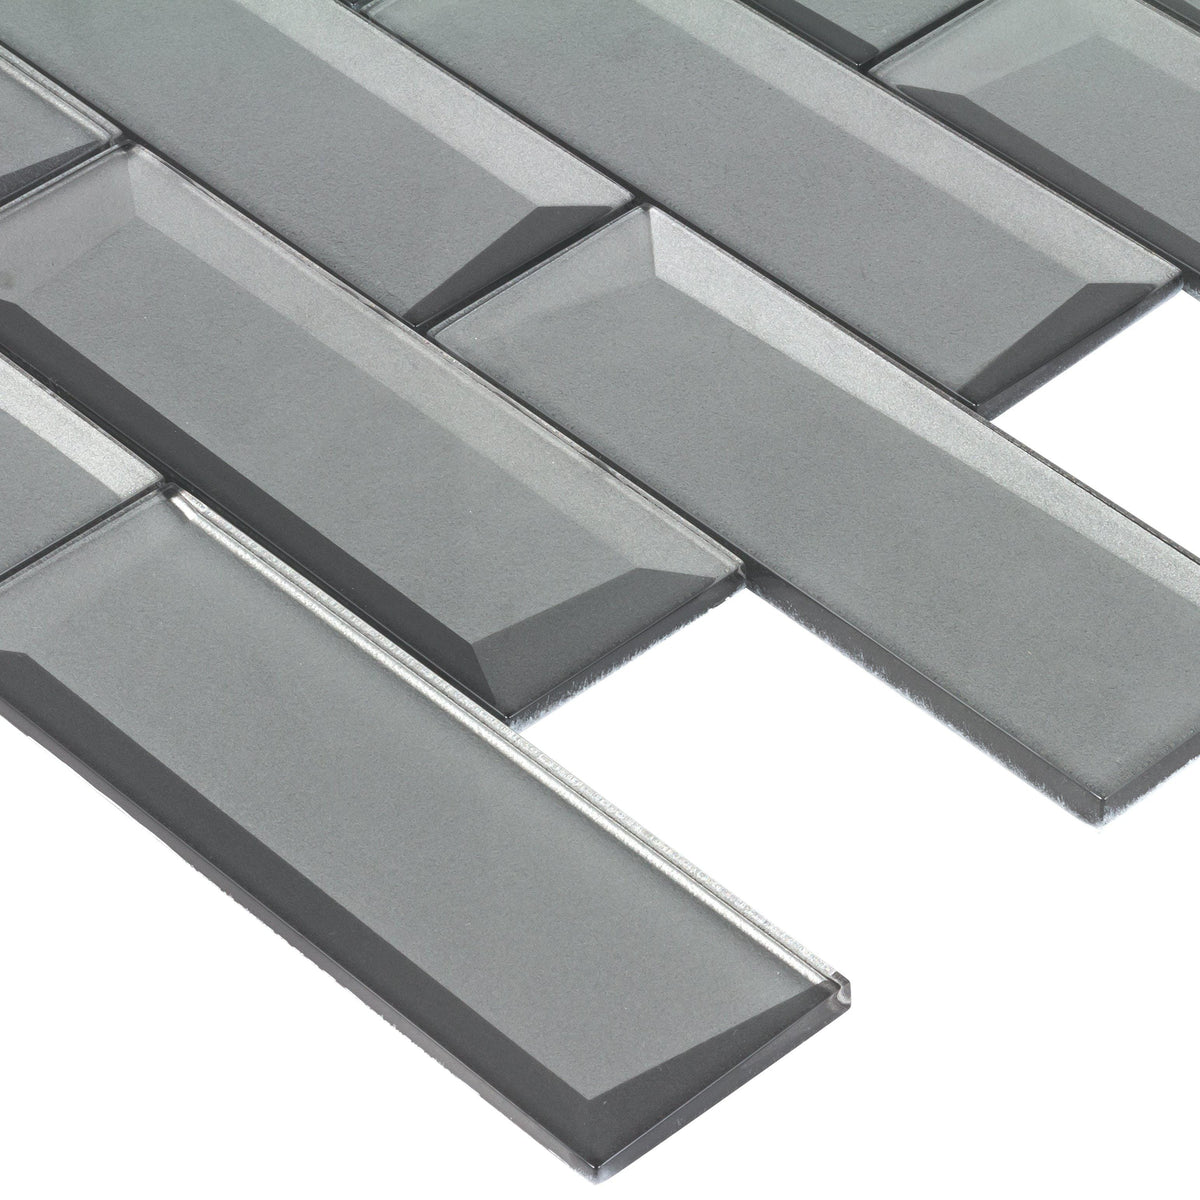 Gray 2x6 Subway Mosaic Metallic Beveled Glass Tiles Mto0160